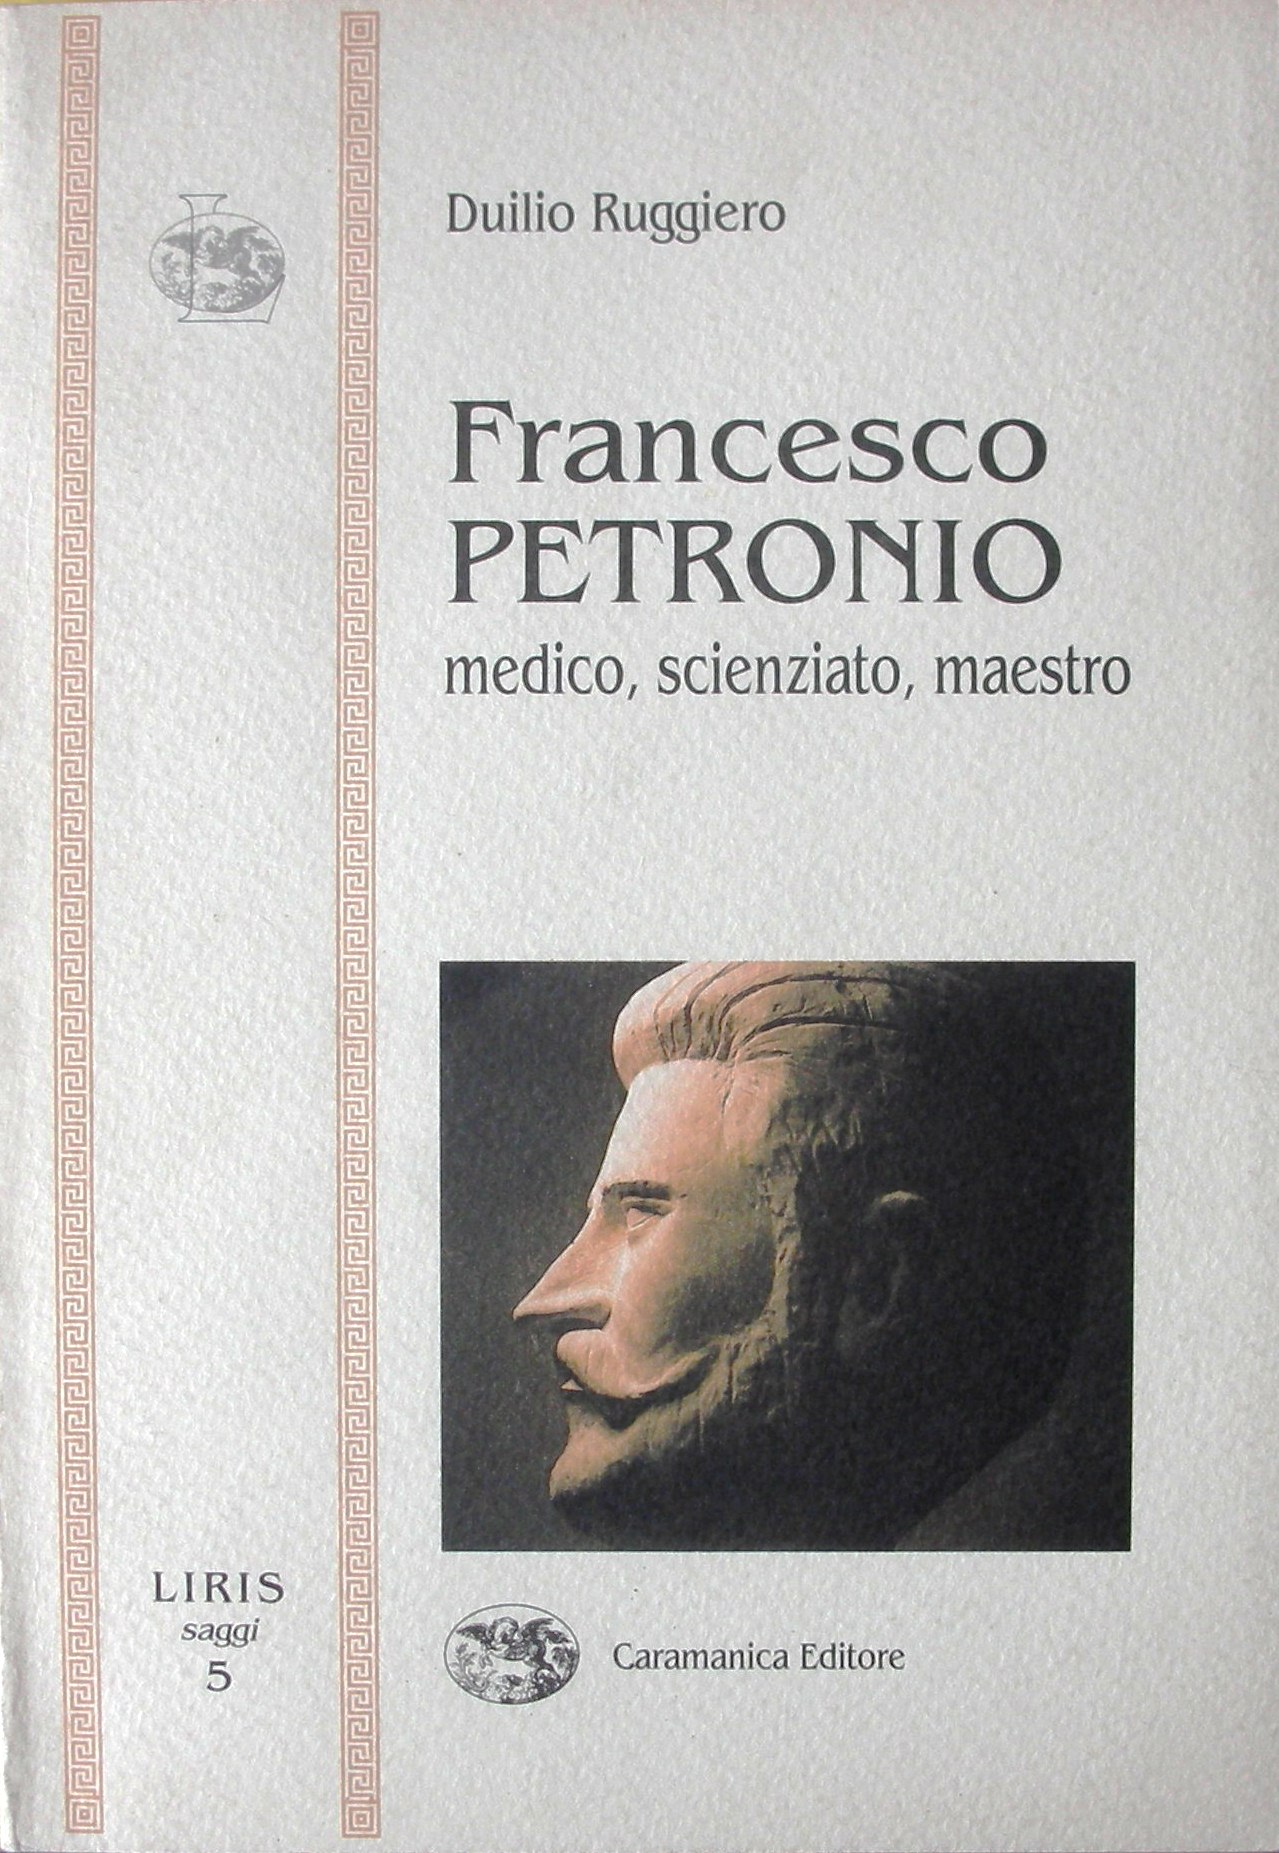 Francesco Petronio